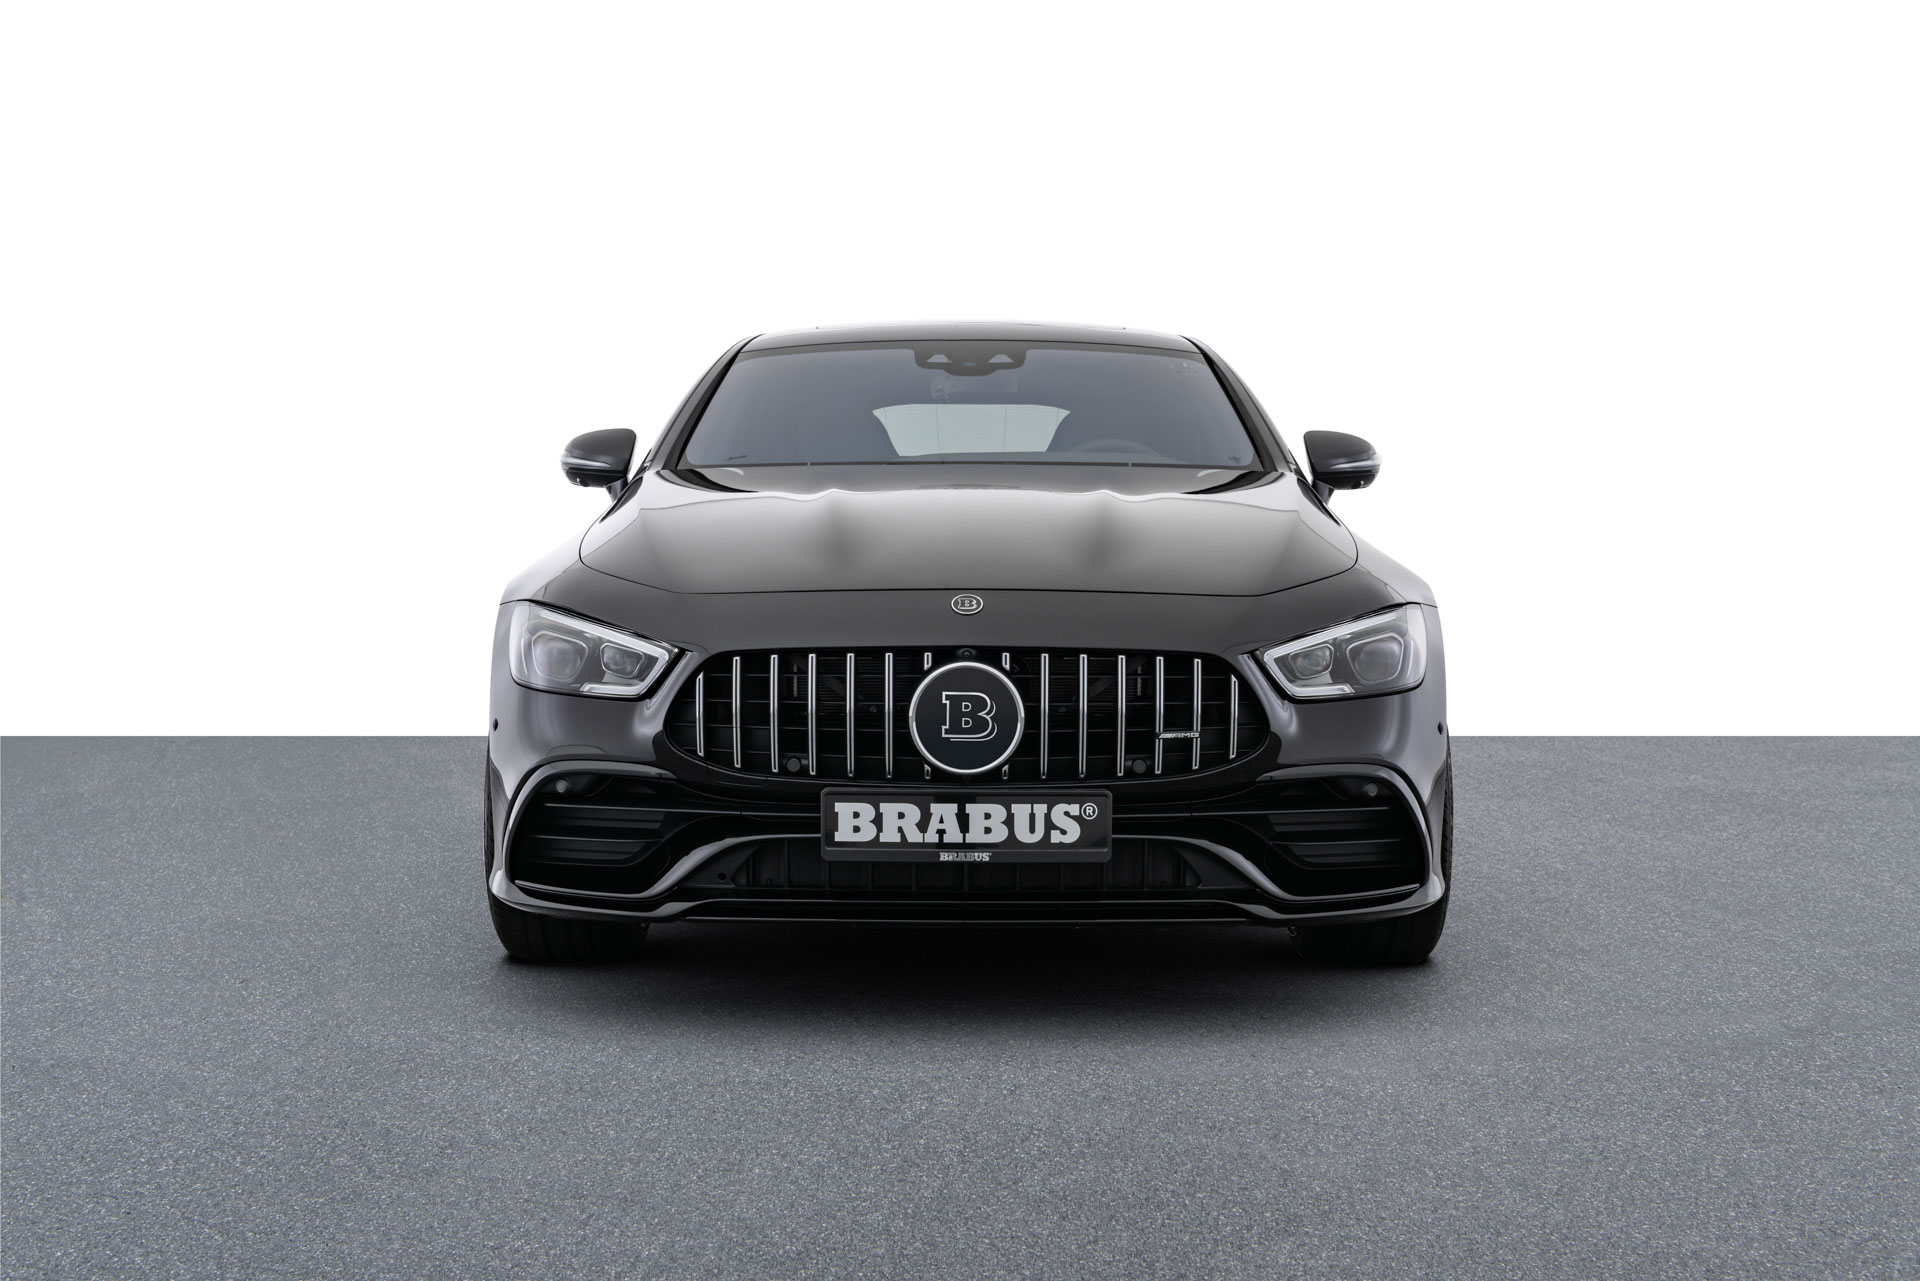 BRABUS 500 – MERCEDES-AMG GT 53 4MATIC+